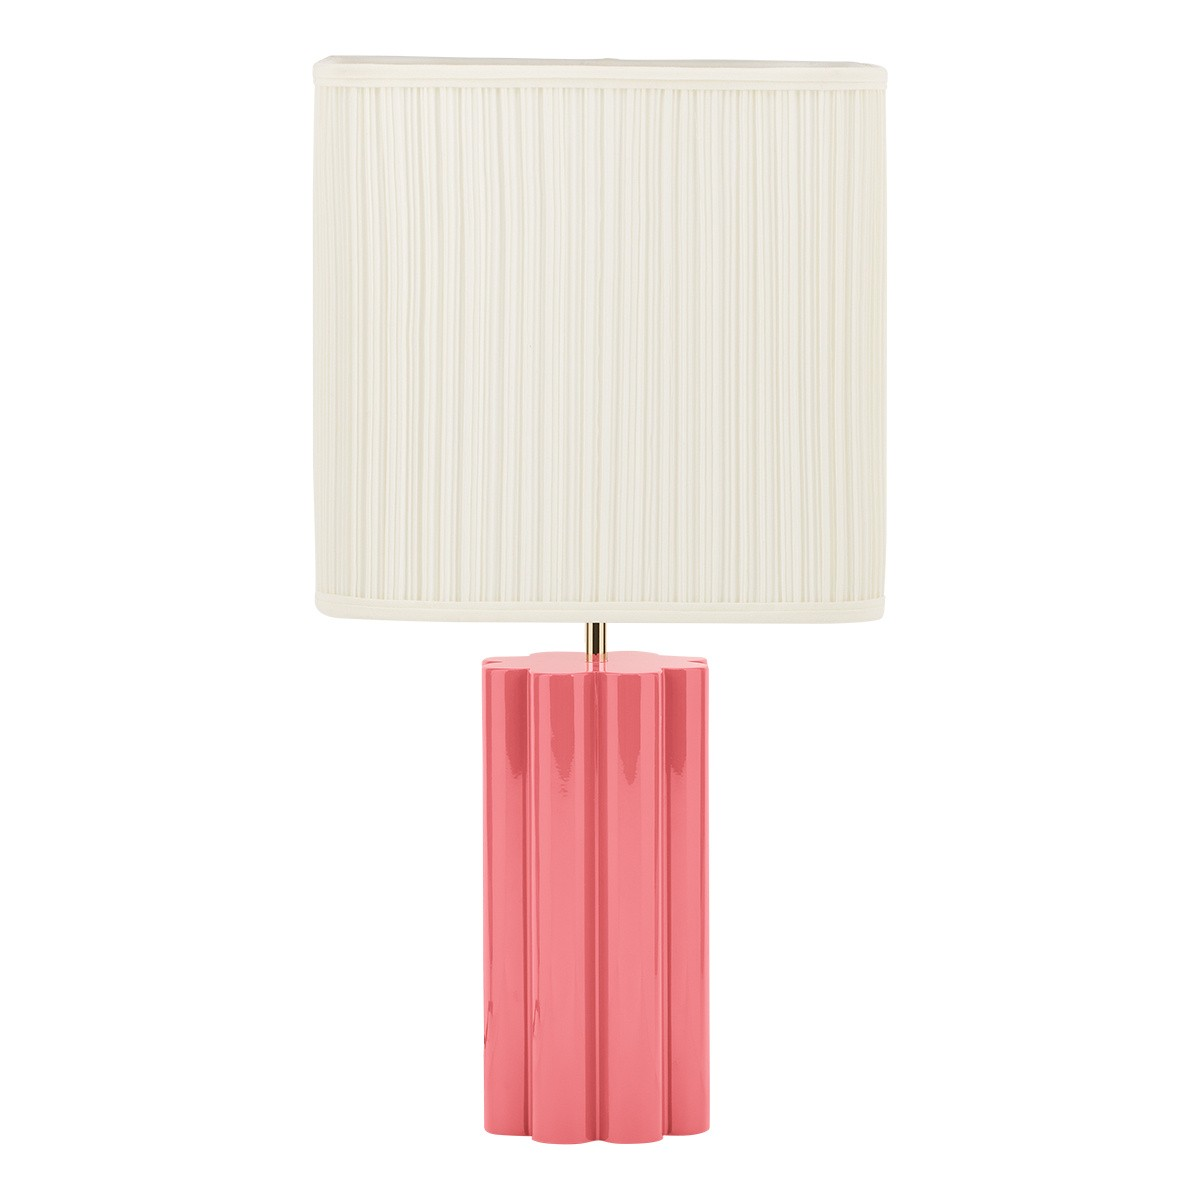 Gioia Table Lamp, Pink